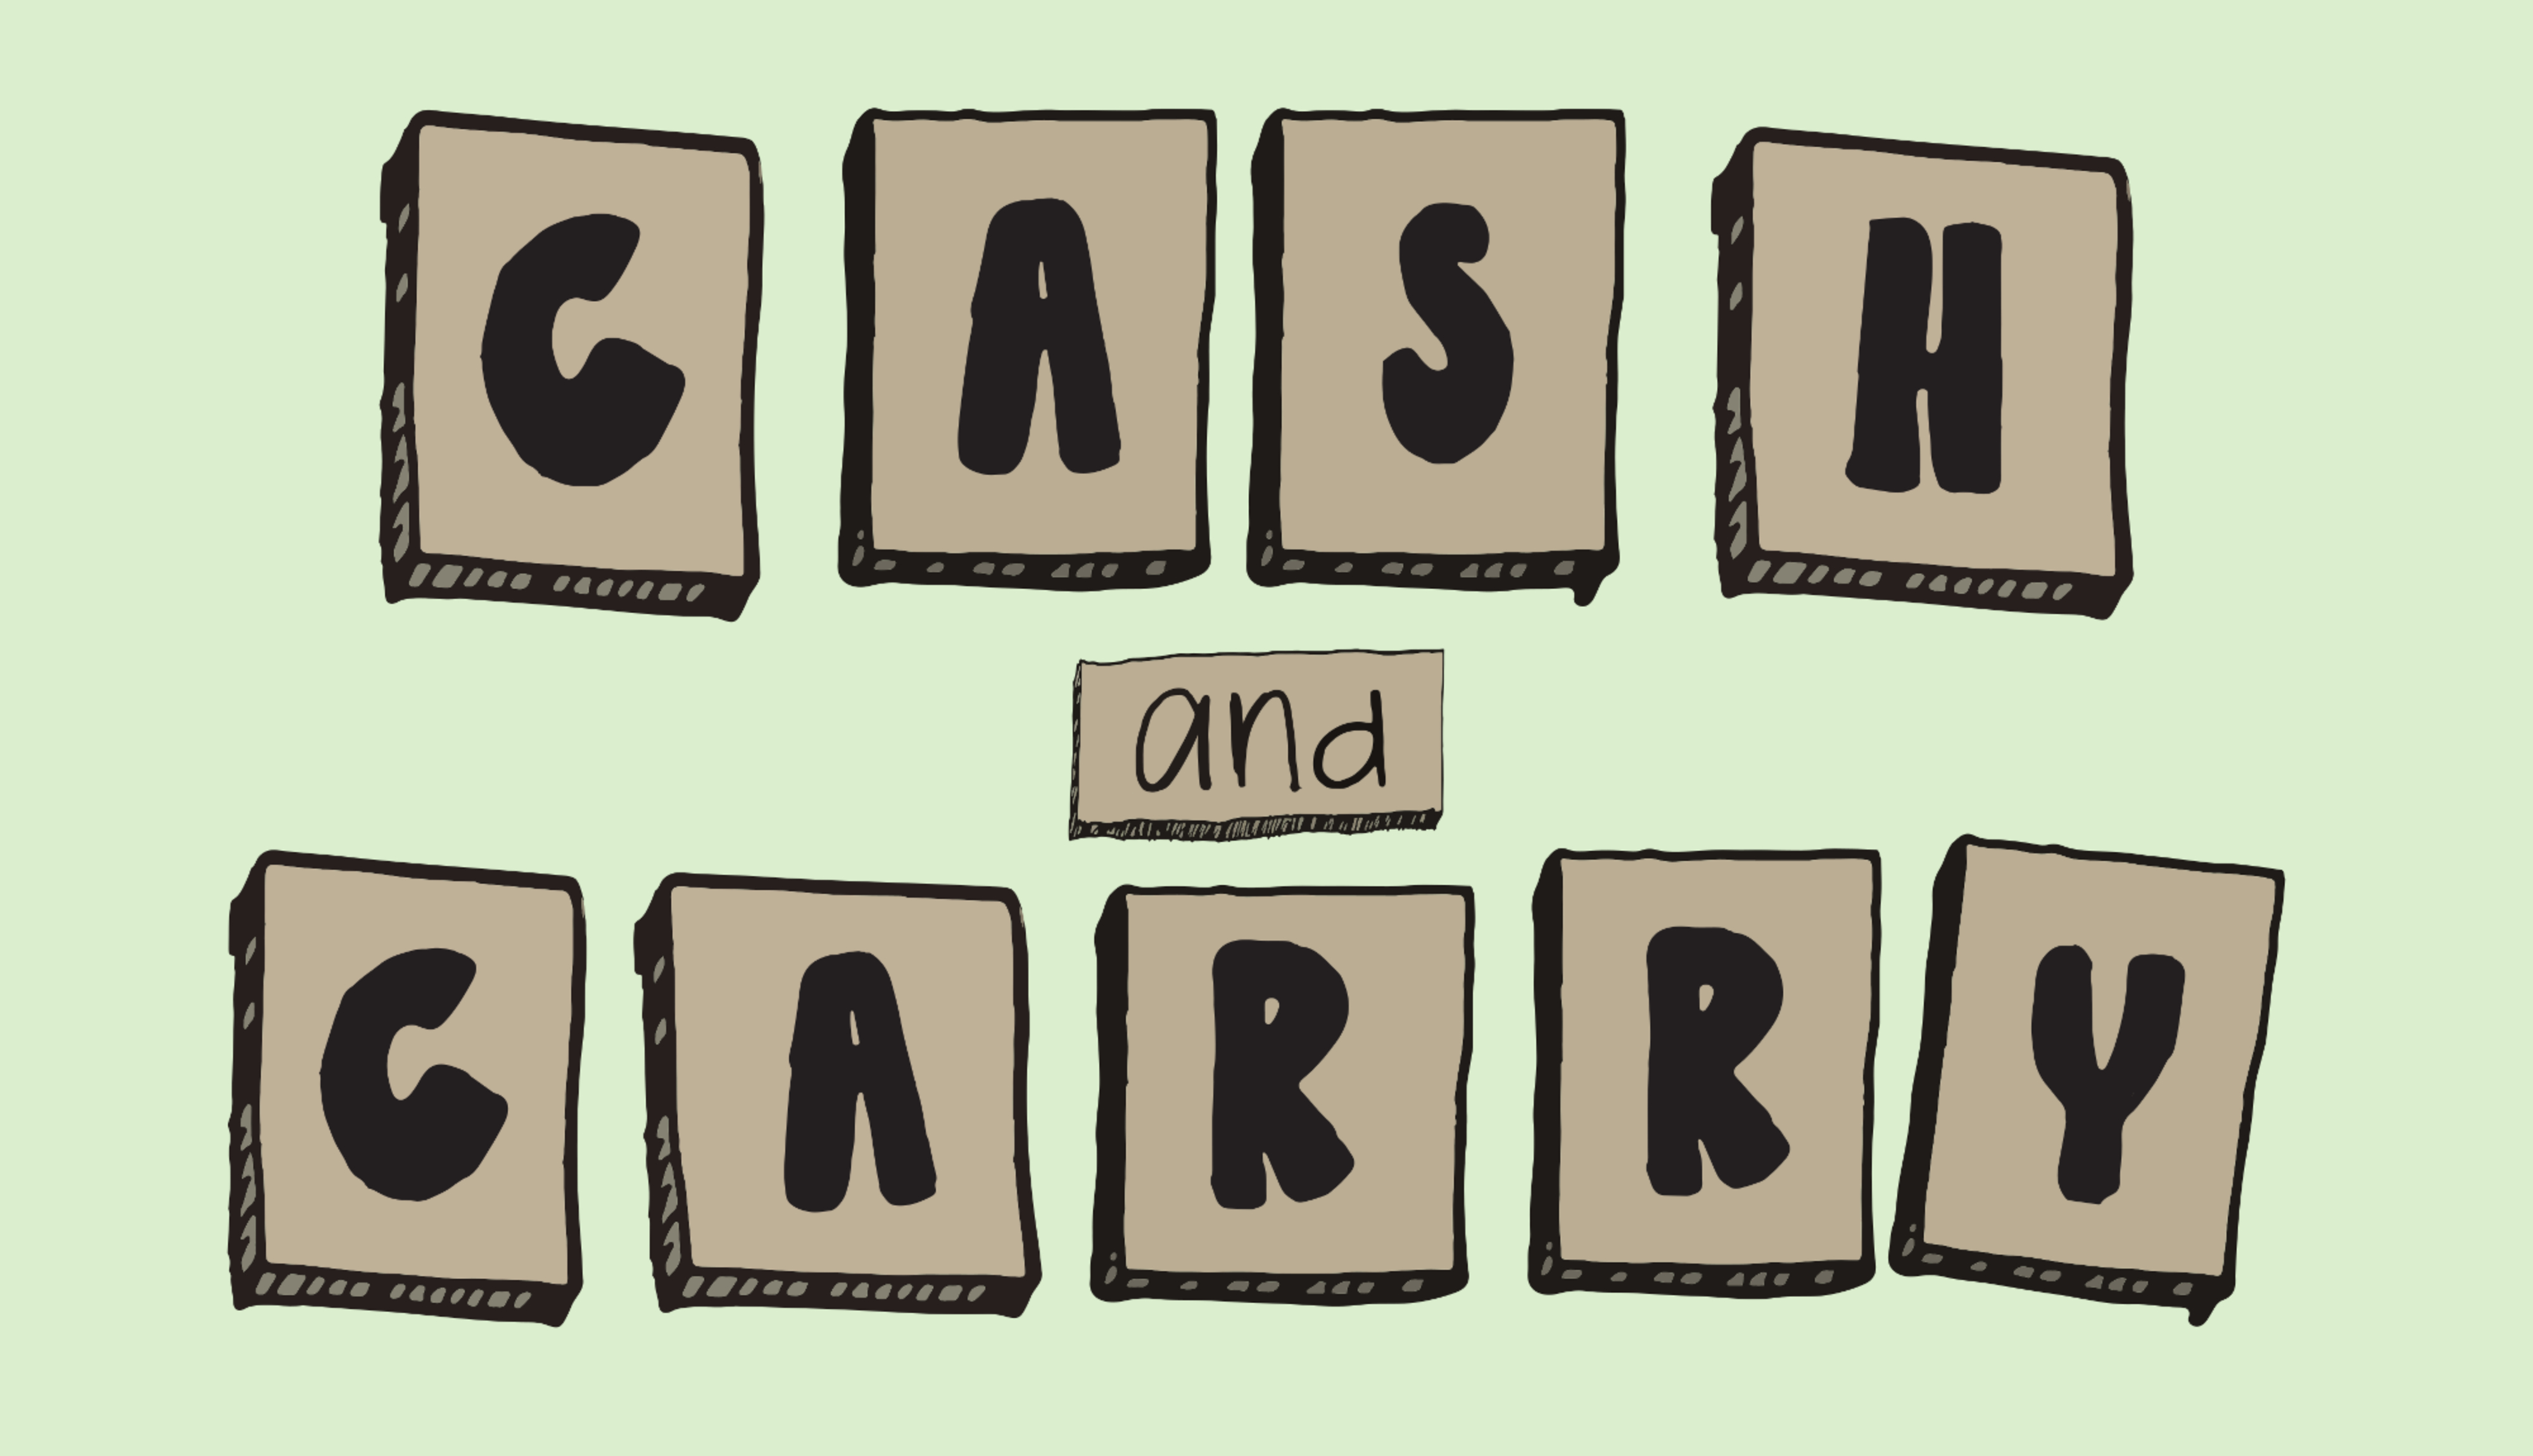 CashNCarry FB event